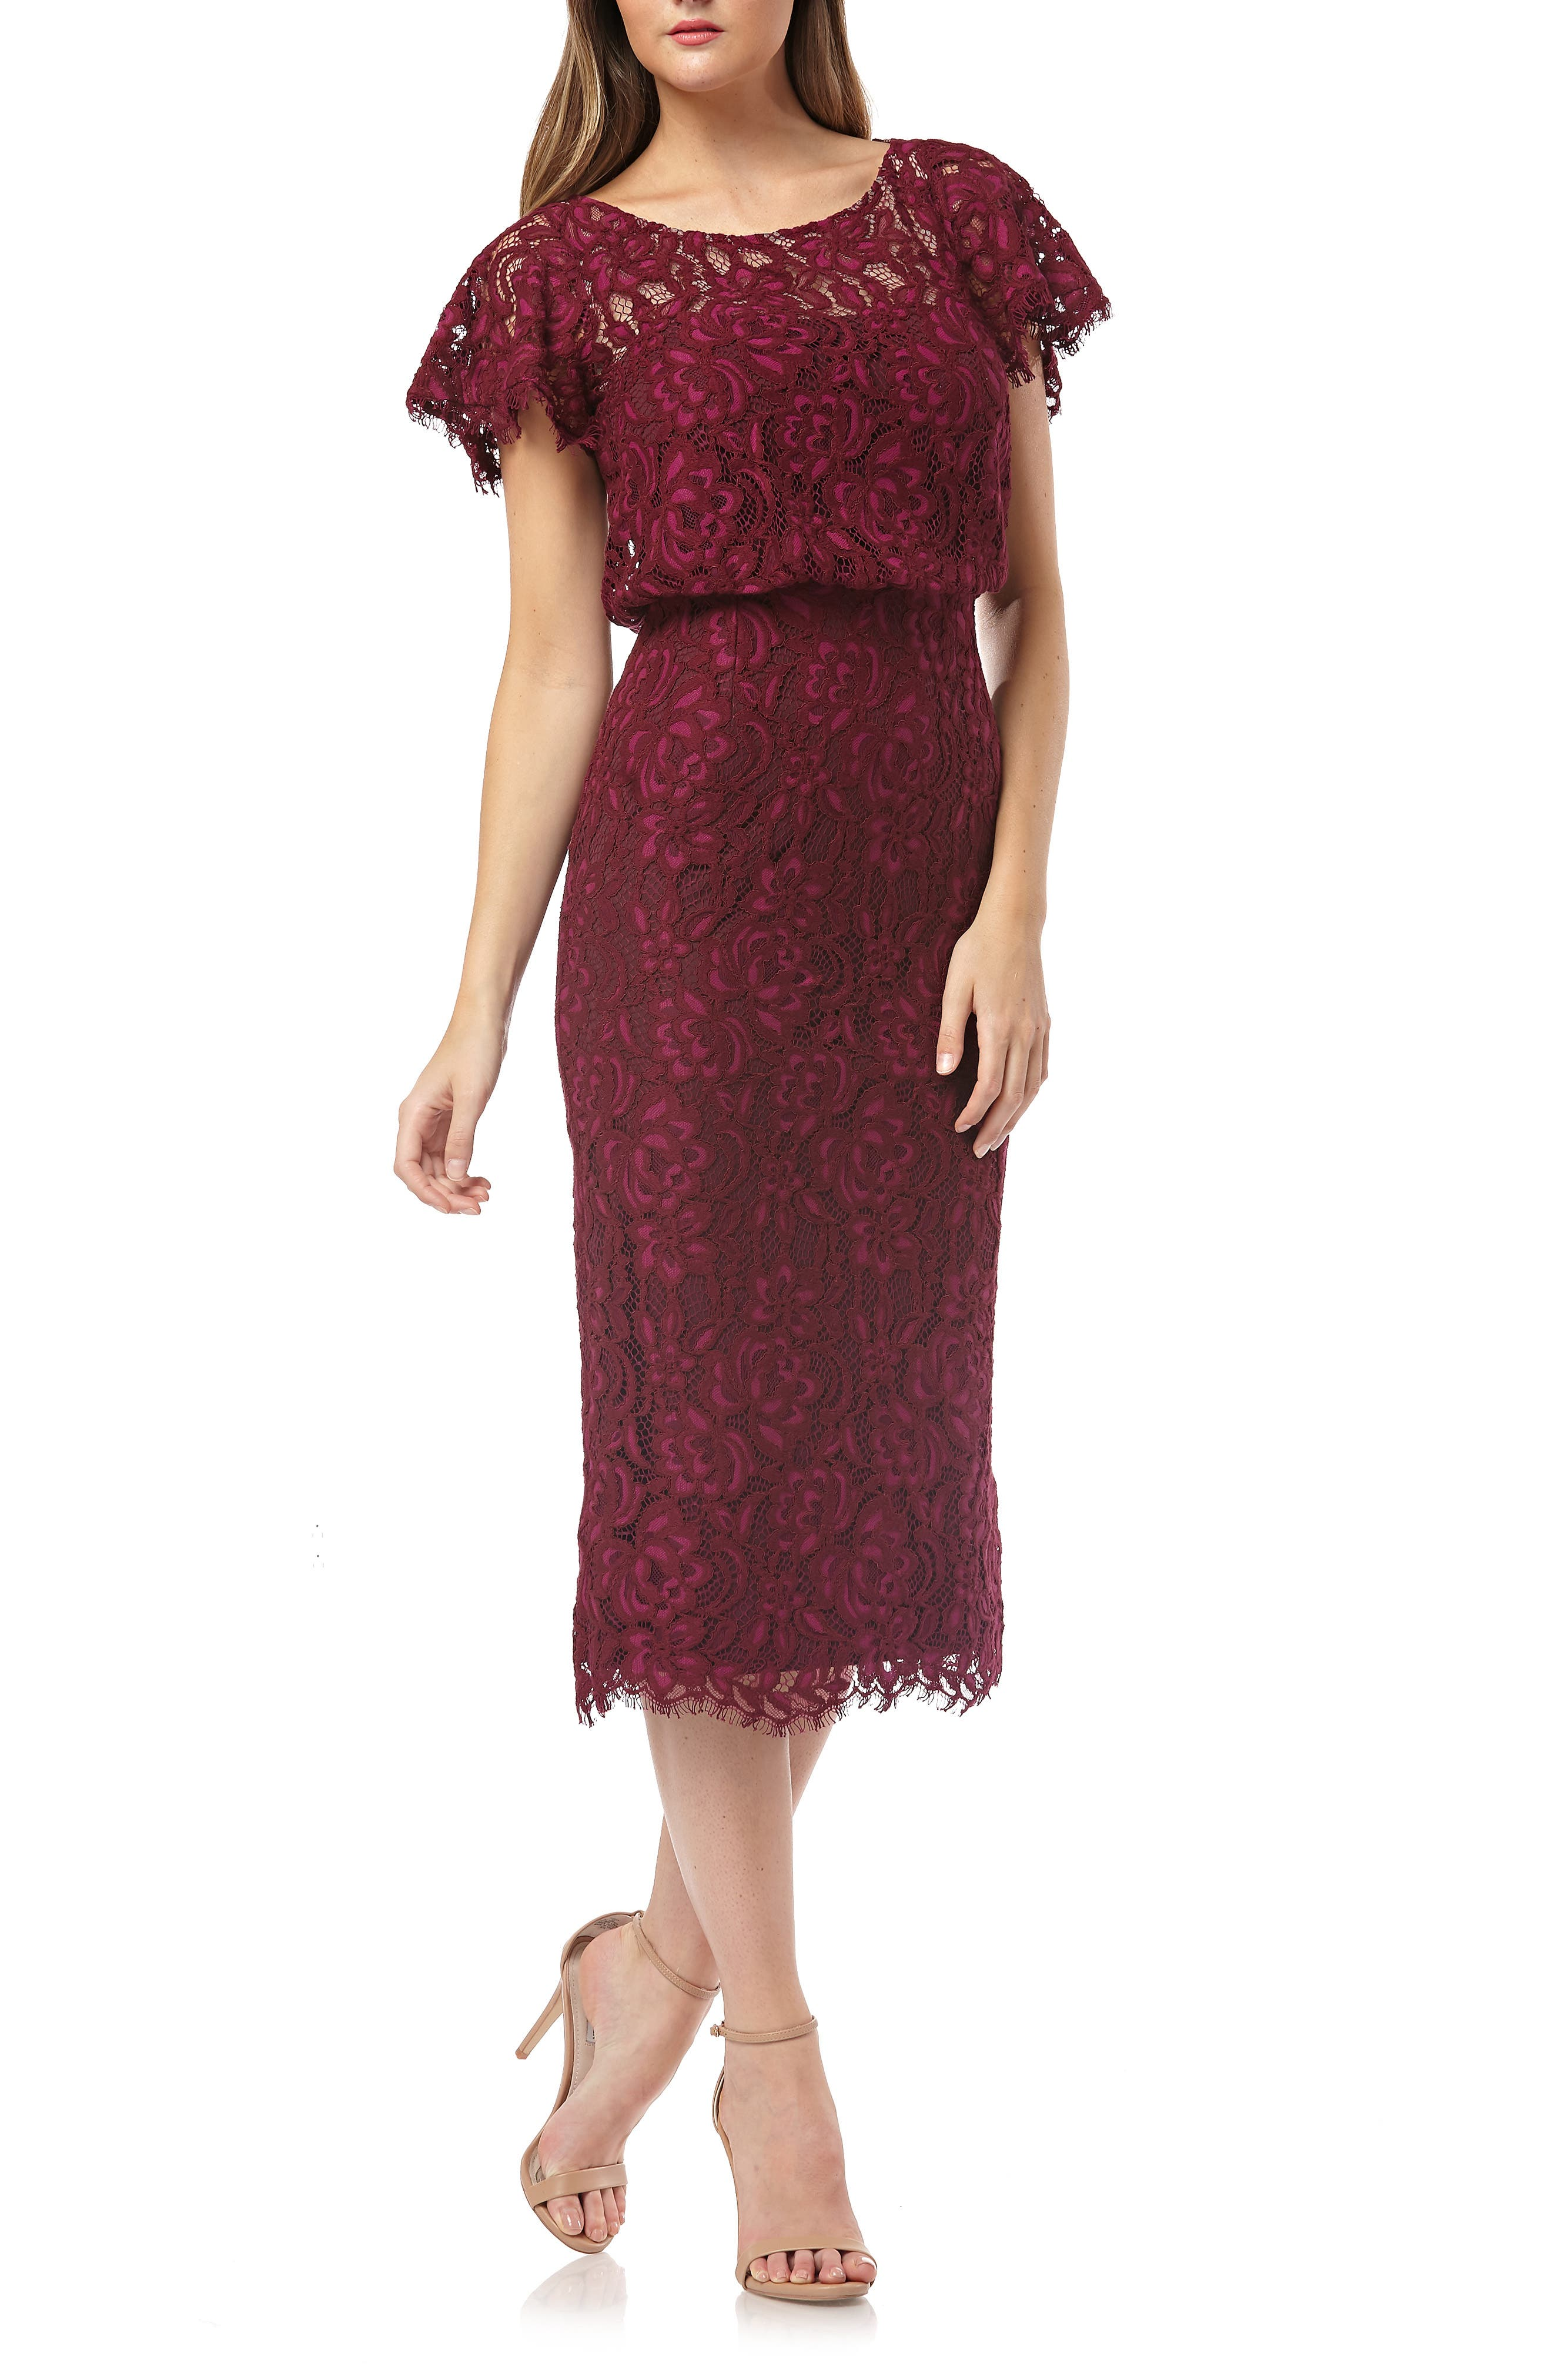 Js Collections Embroidered Lace Blouson Cocktail Dress, Red